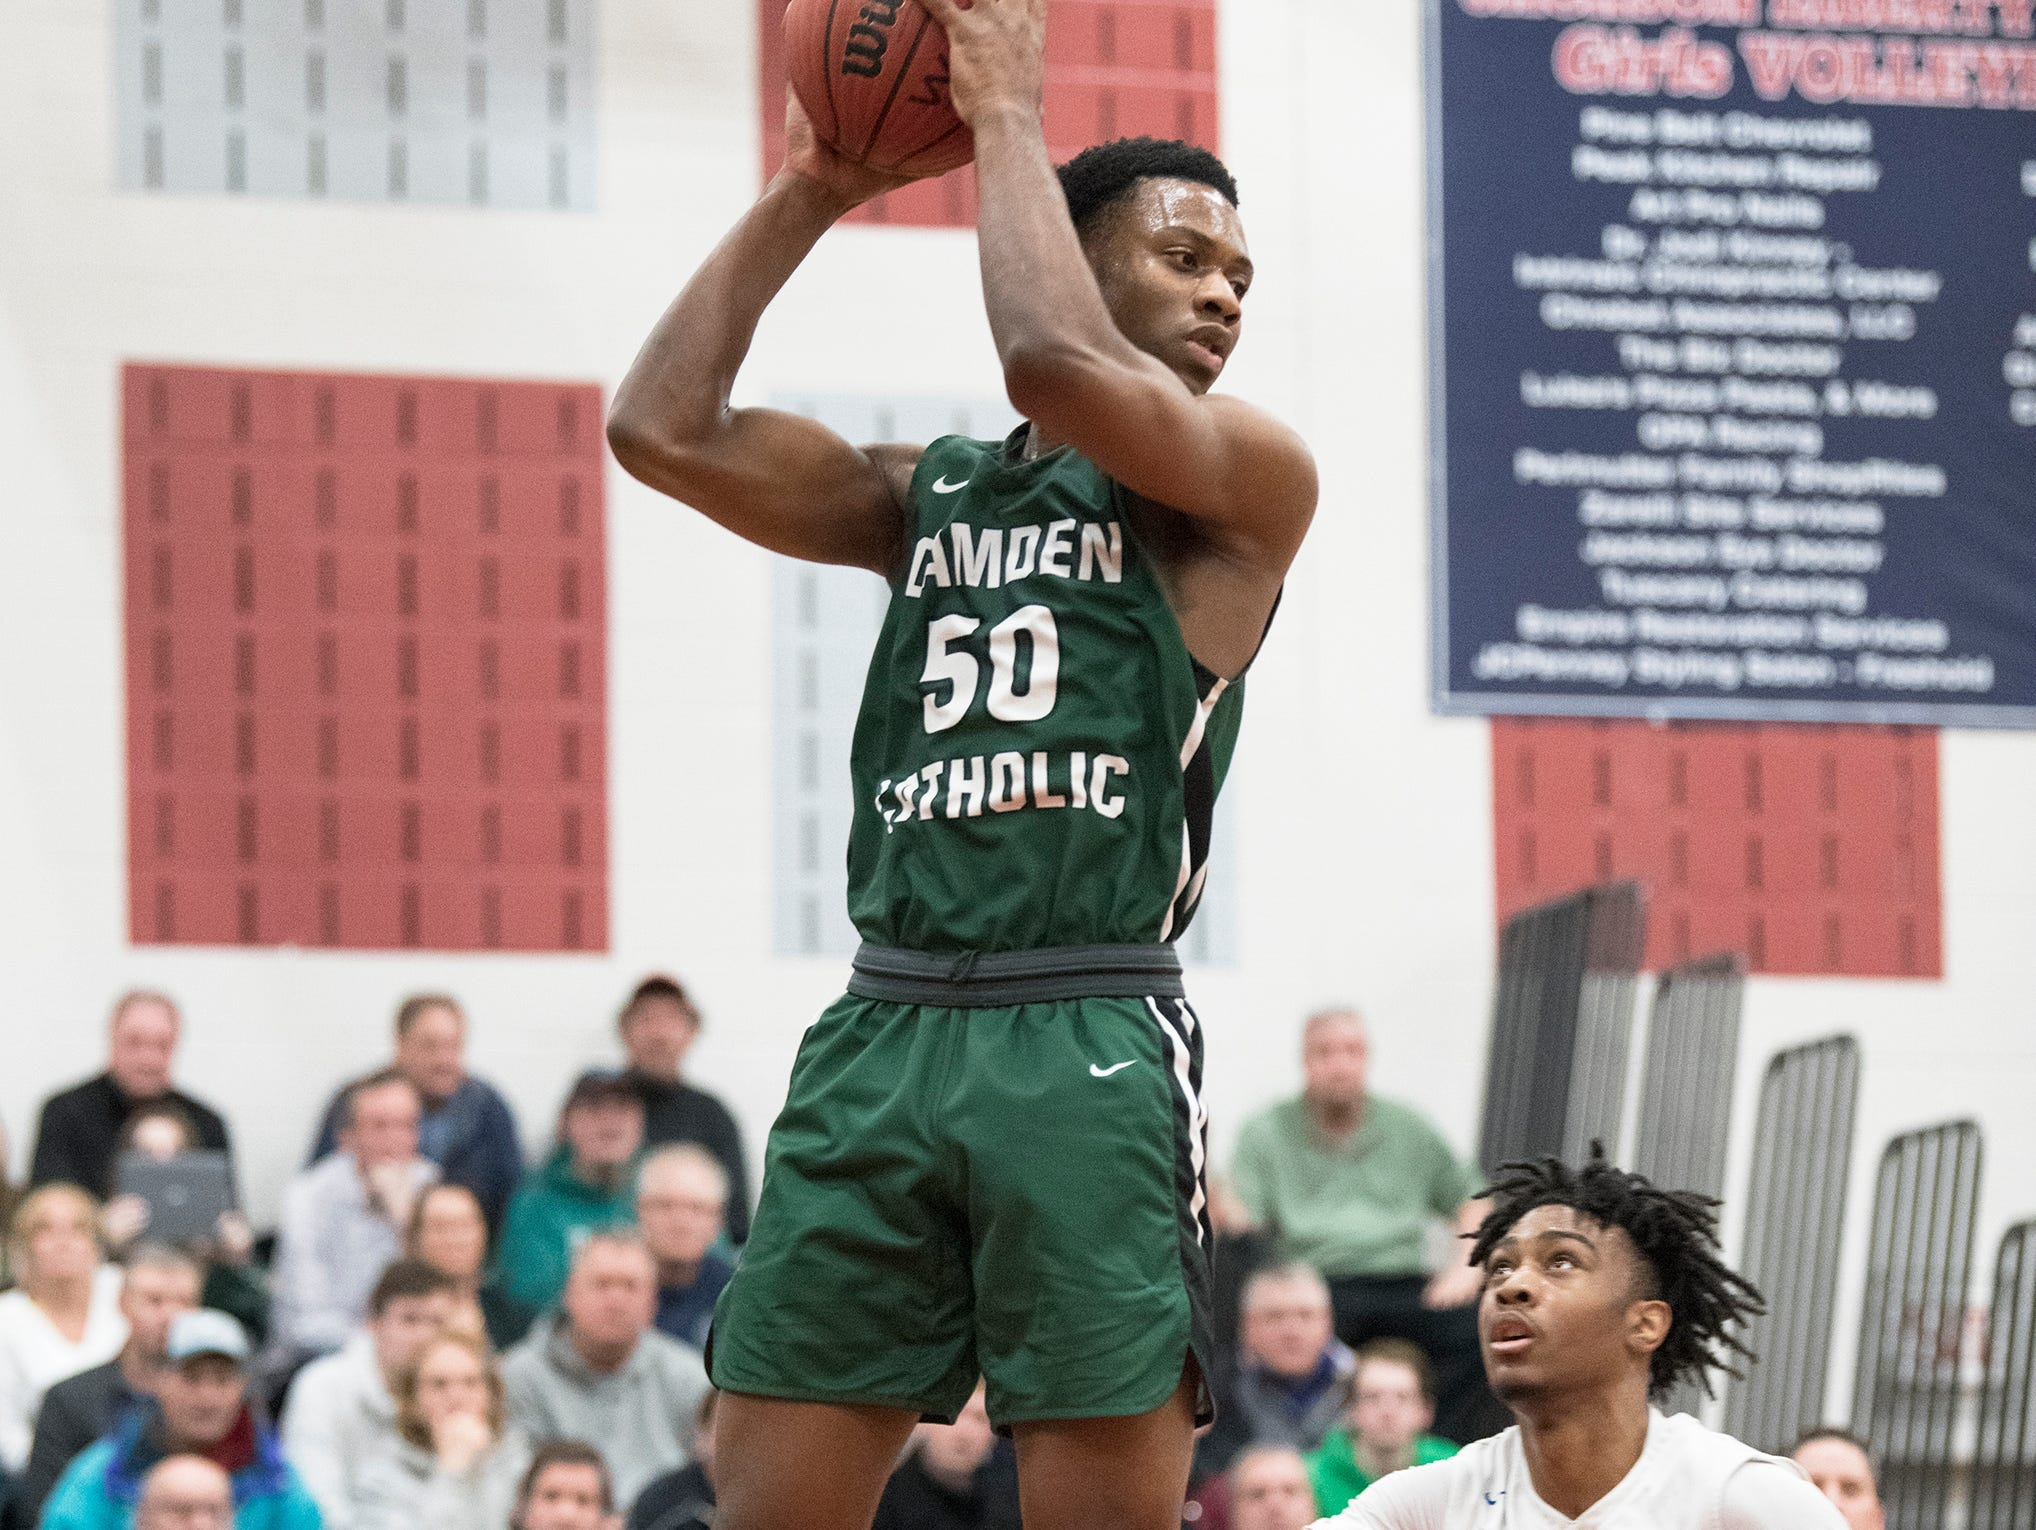 Camden Catholic's Uche Okafor grabs a rebound over Paul VI's Hartnel Haye during the 2nd quarter of the Non-Public A South boys basketball final played at Jackson Liberty High School on Tuesday, March 5, 2019.